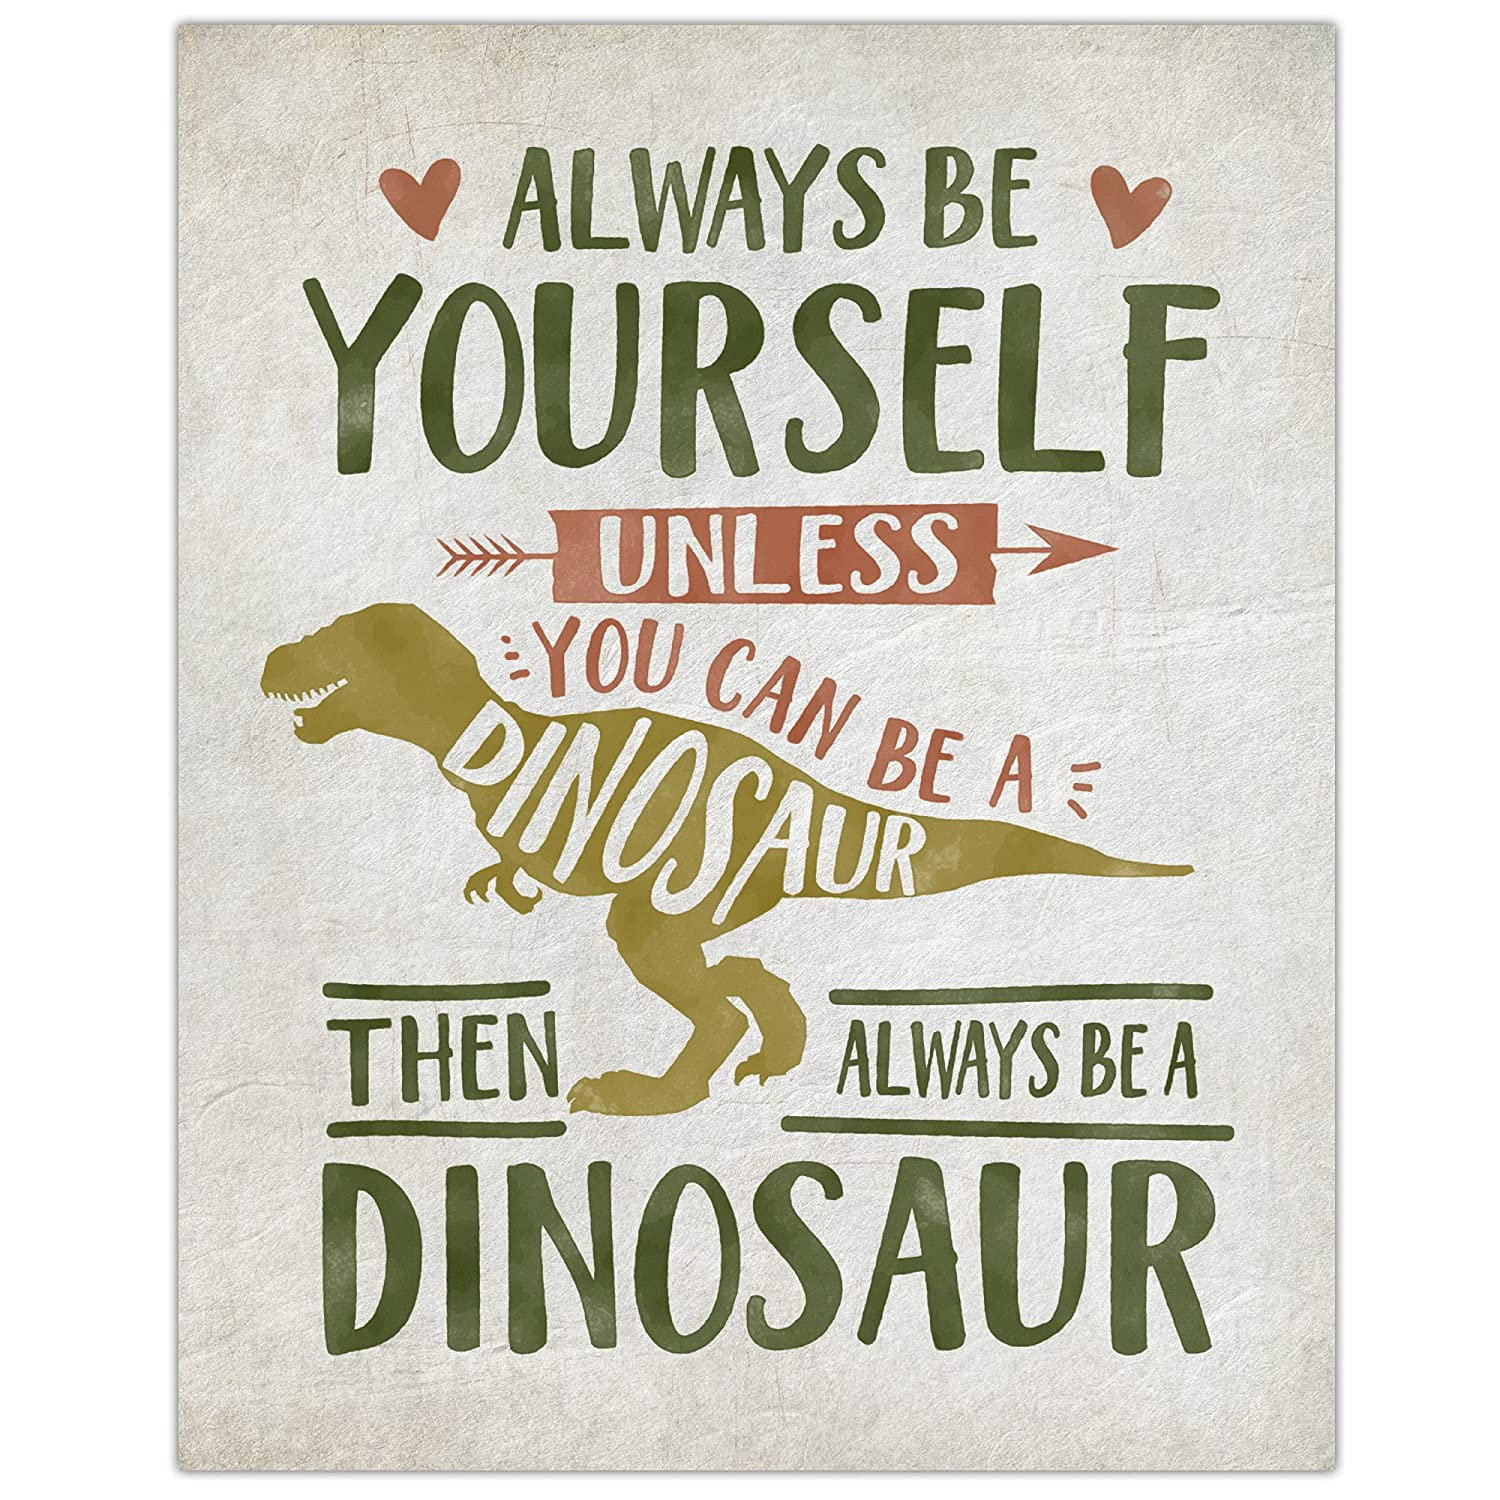 Always Be Yourself Unless New sales You overseas Can Dinosaur Print Unfr Art - A